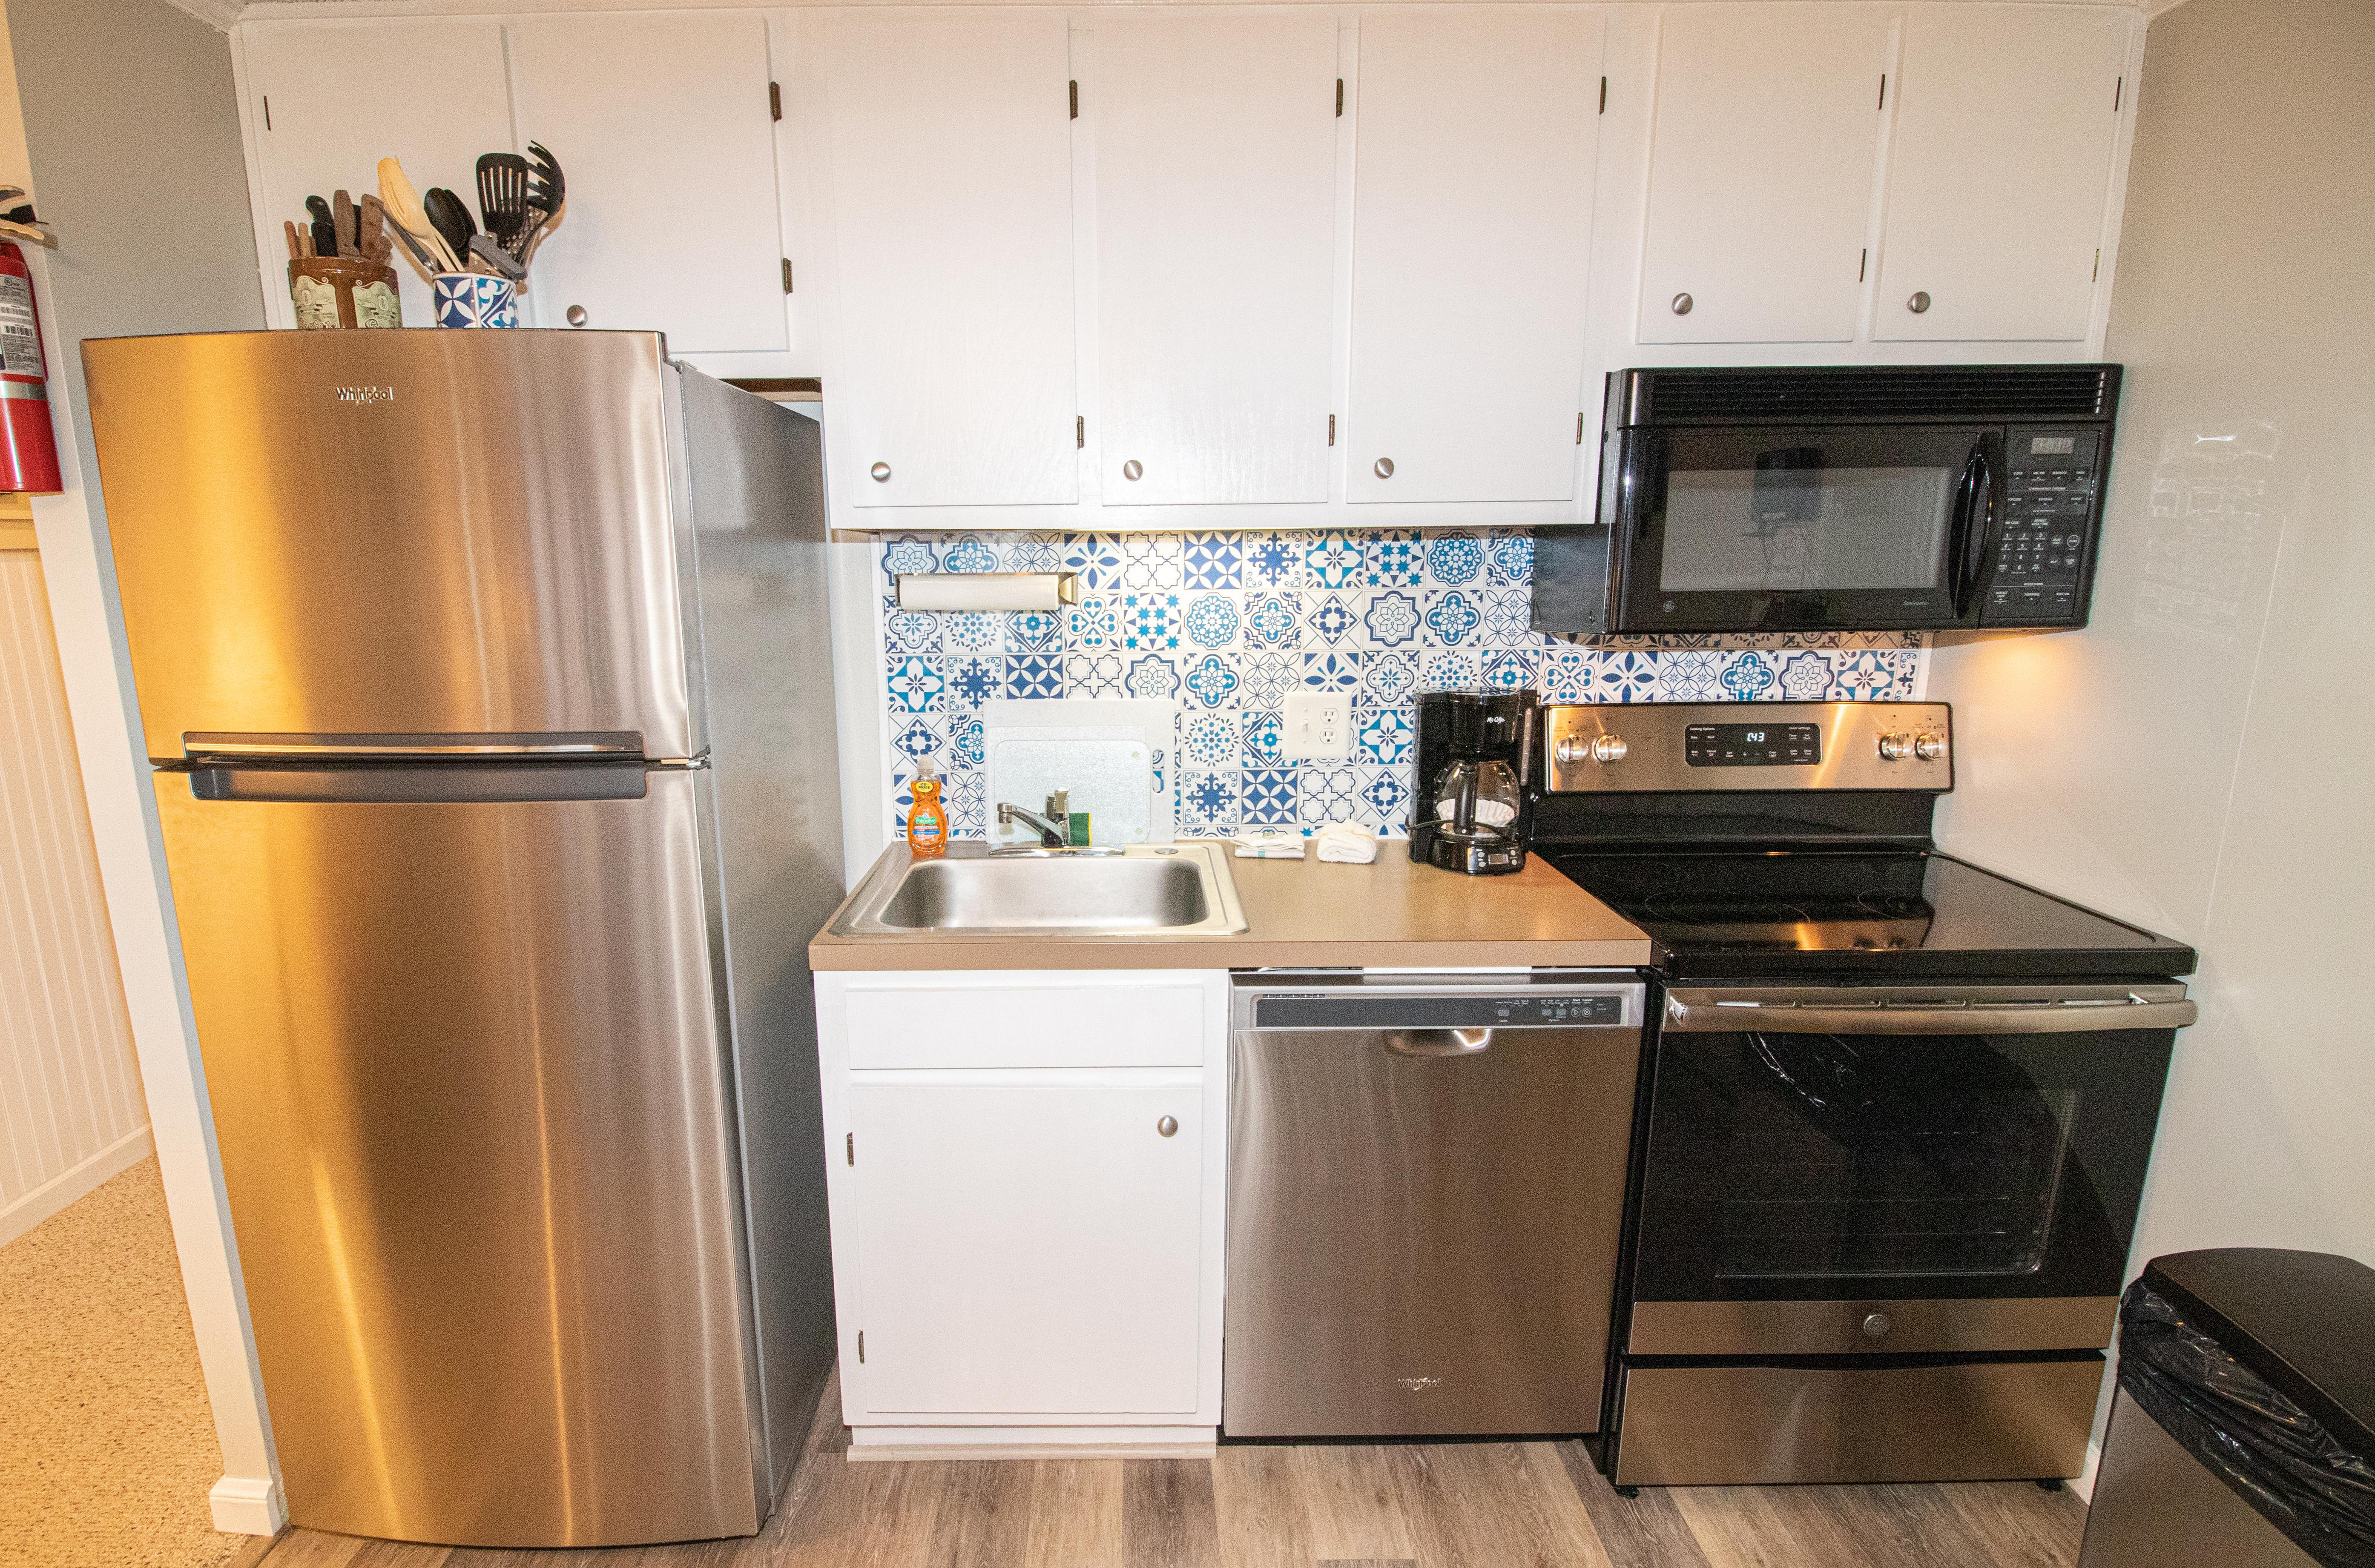 Fully-equipped kitchen with all the appliances you need to cook your own meals!